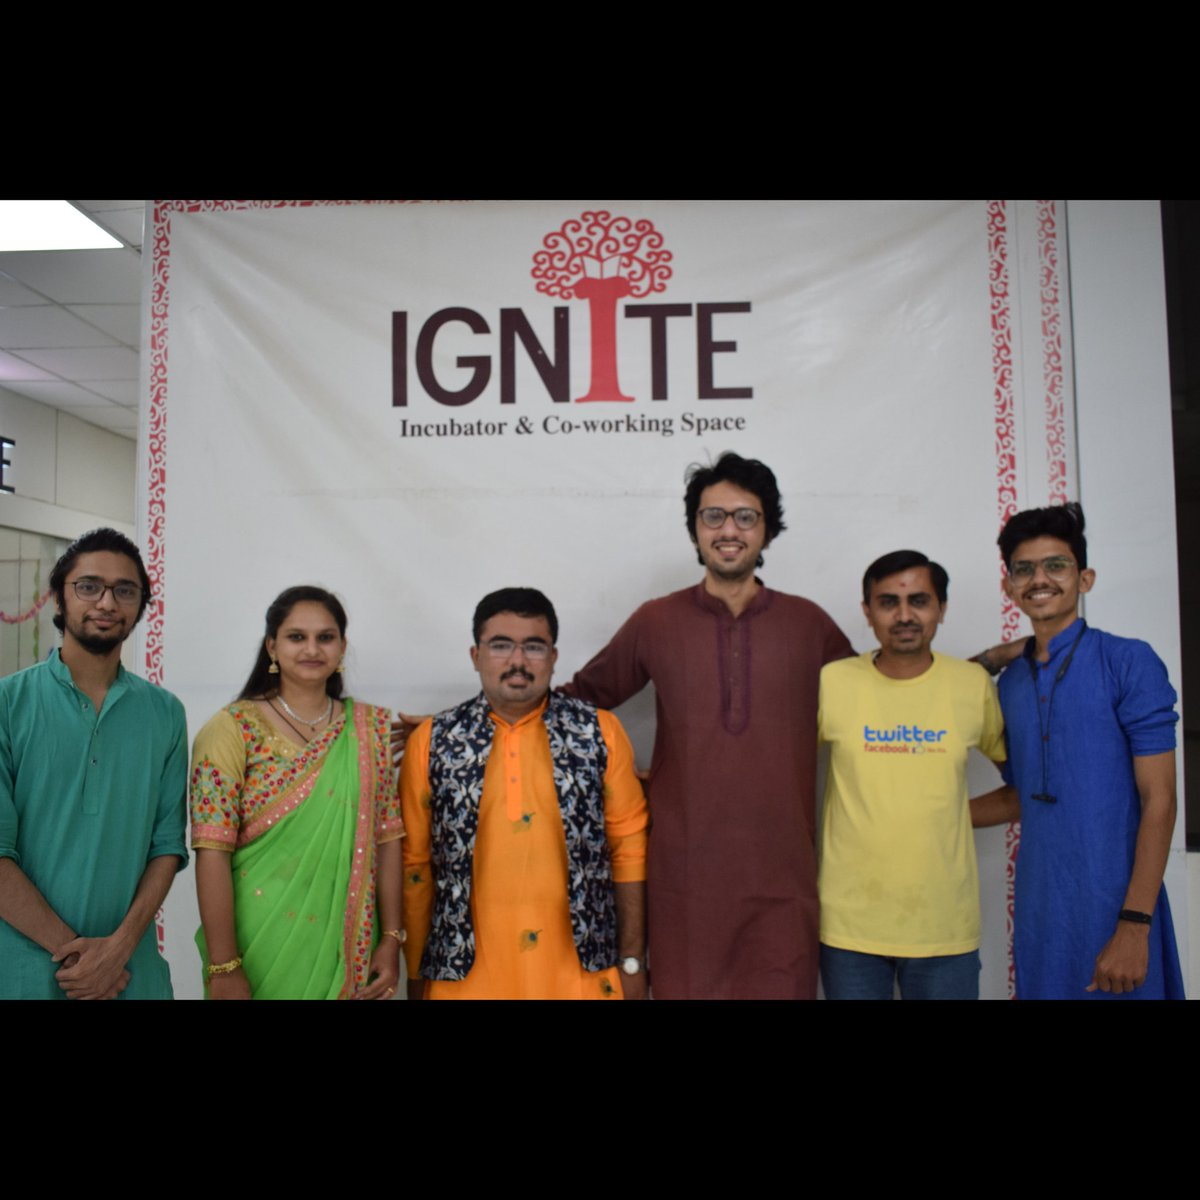 A group becomes a #team when each member is sure enough of themselves and their contribution to praise the skills of others. #latepost  Oct 17 to 25, 2020, celebration of #shubhaarambhnavratri2020 at @ignitesocet  #teamwork #challenges #eventplanning #navratri2020 #navratri https://t.co/TlDI7fqkGq